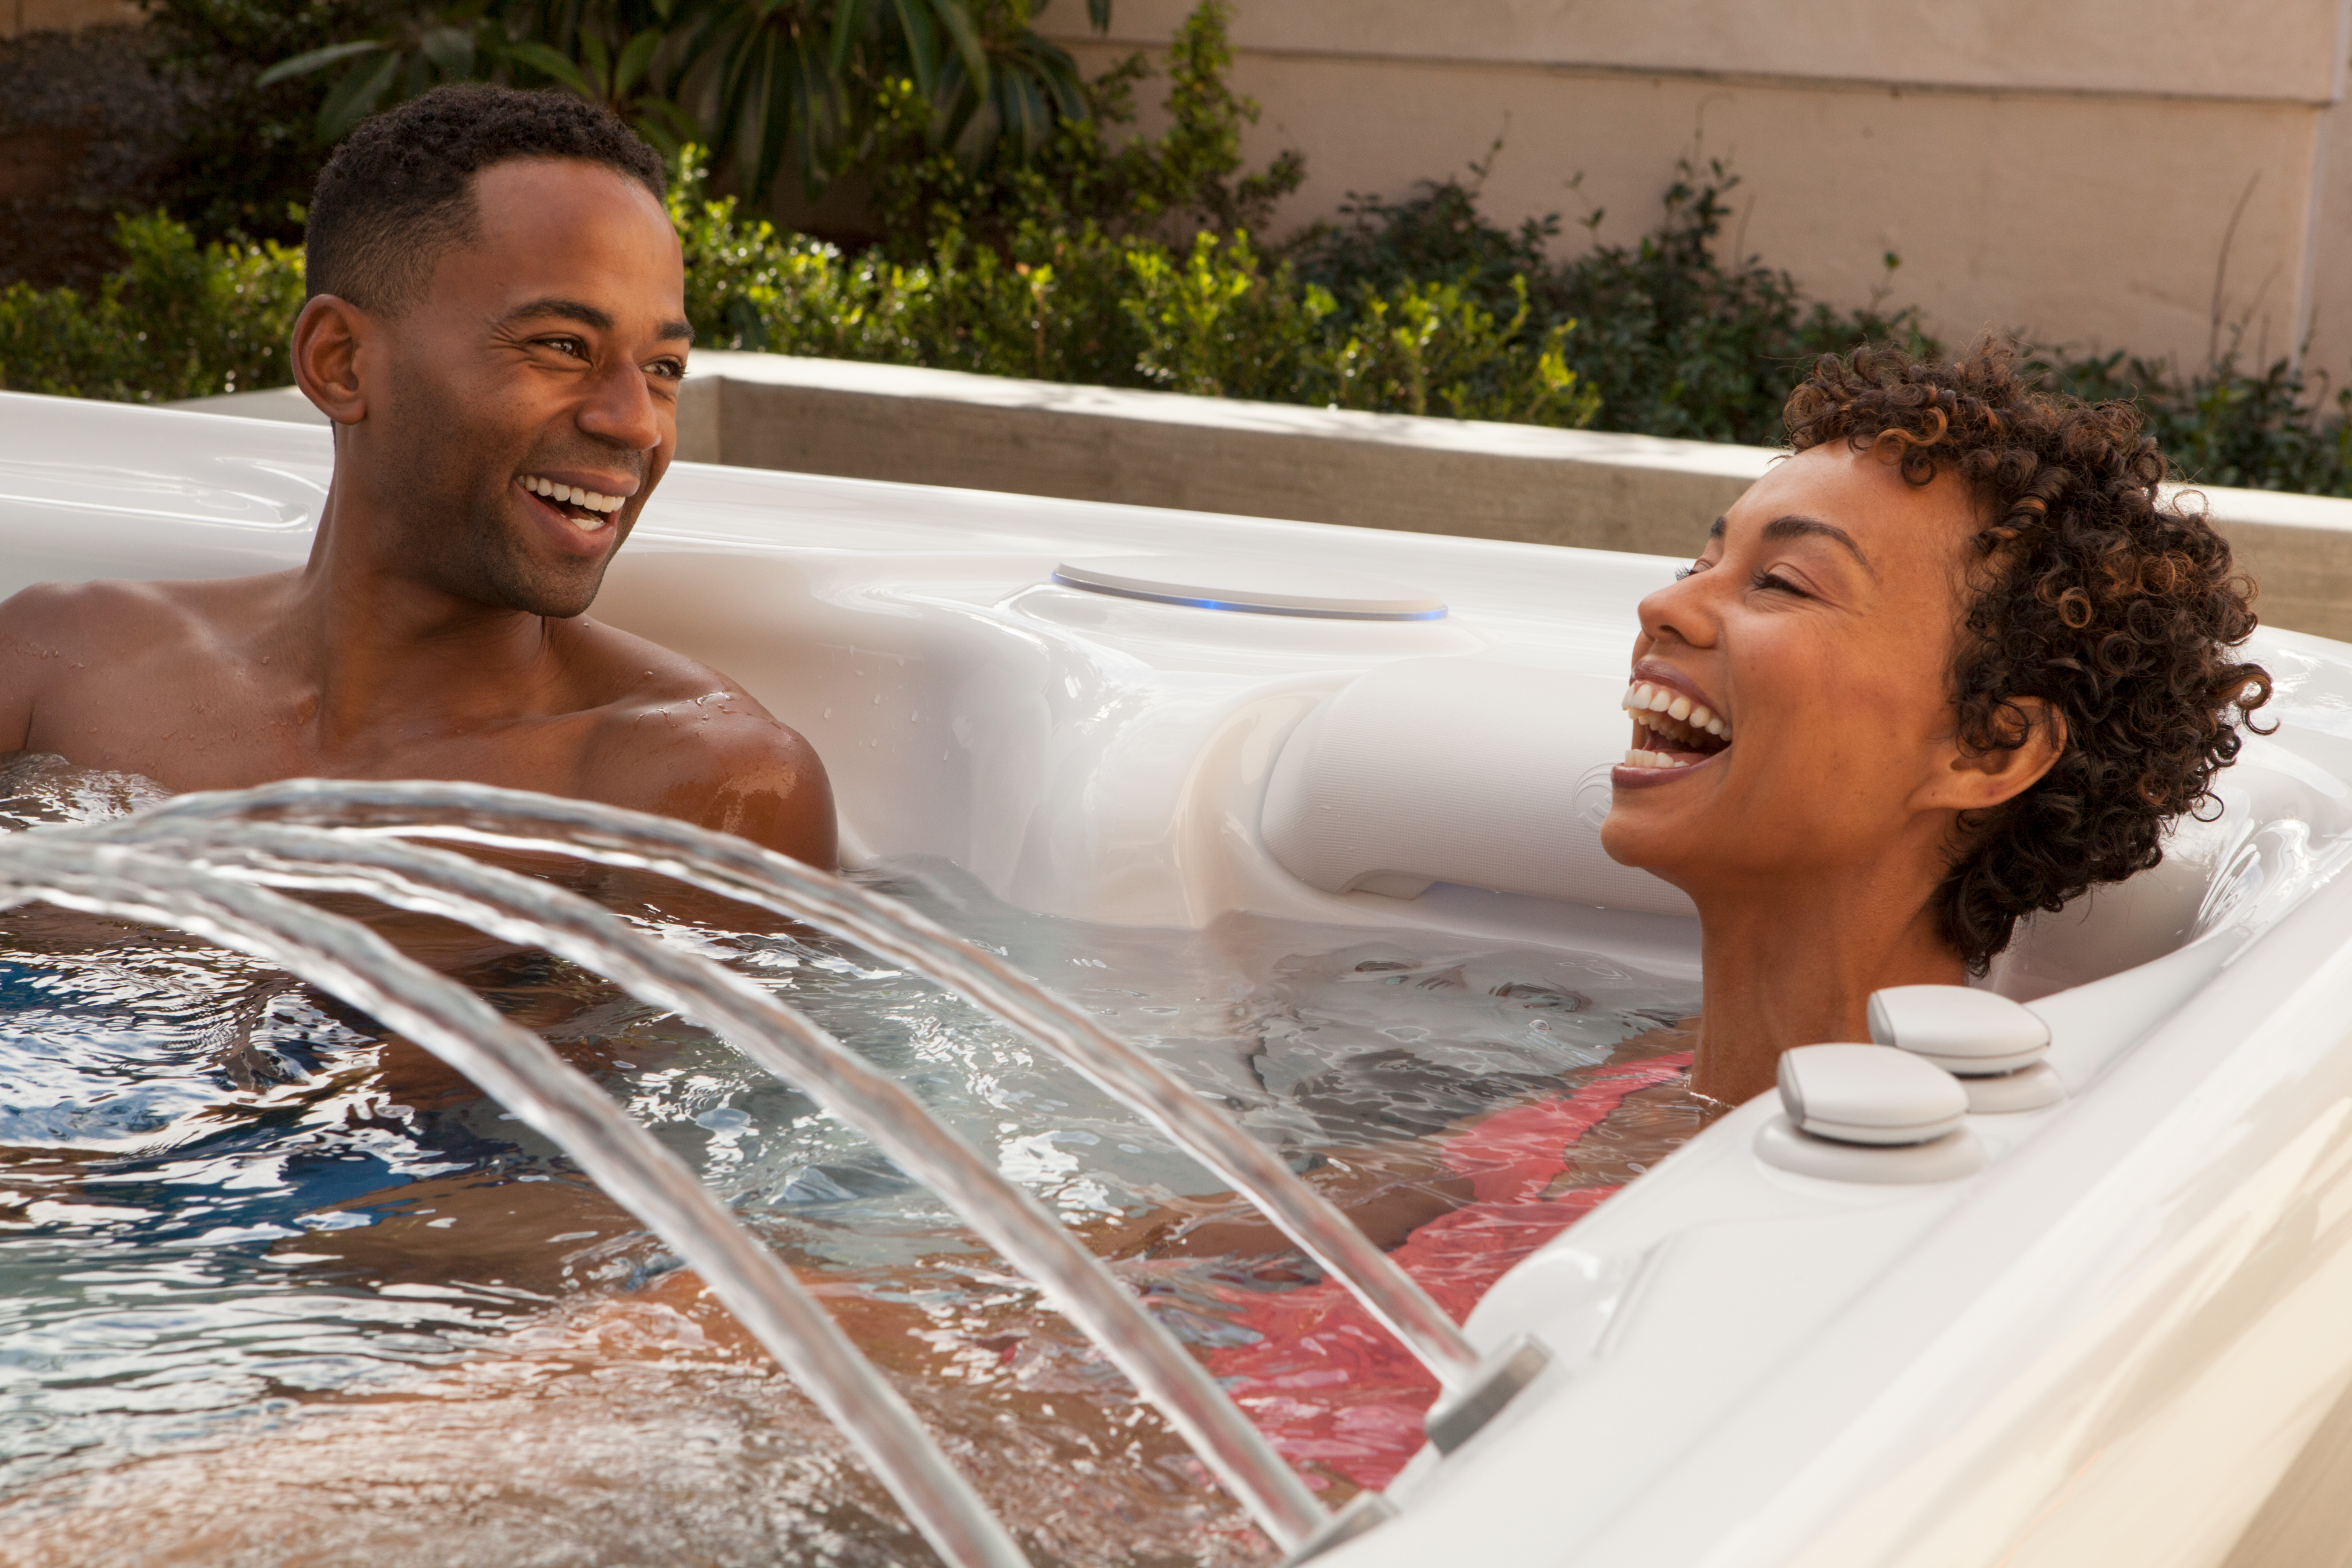 So Your New Home Has A Hot Tub…